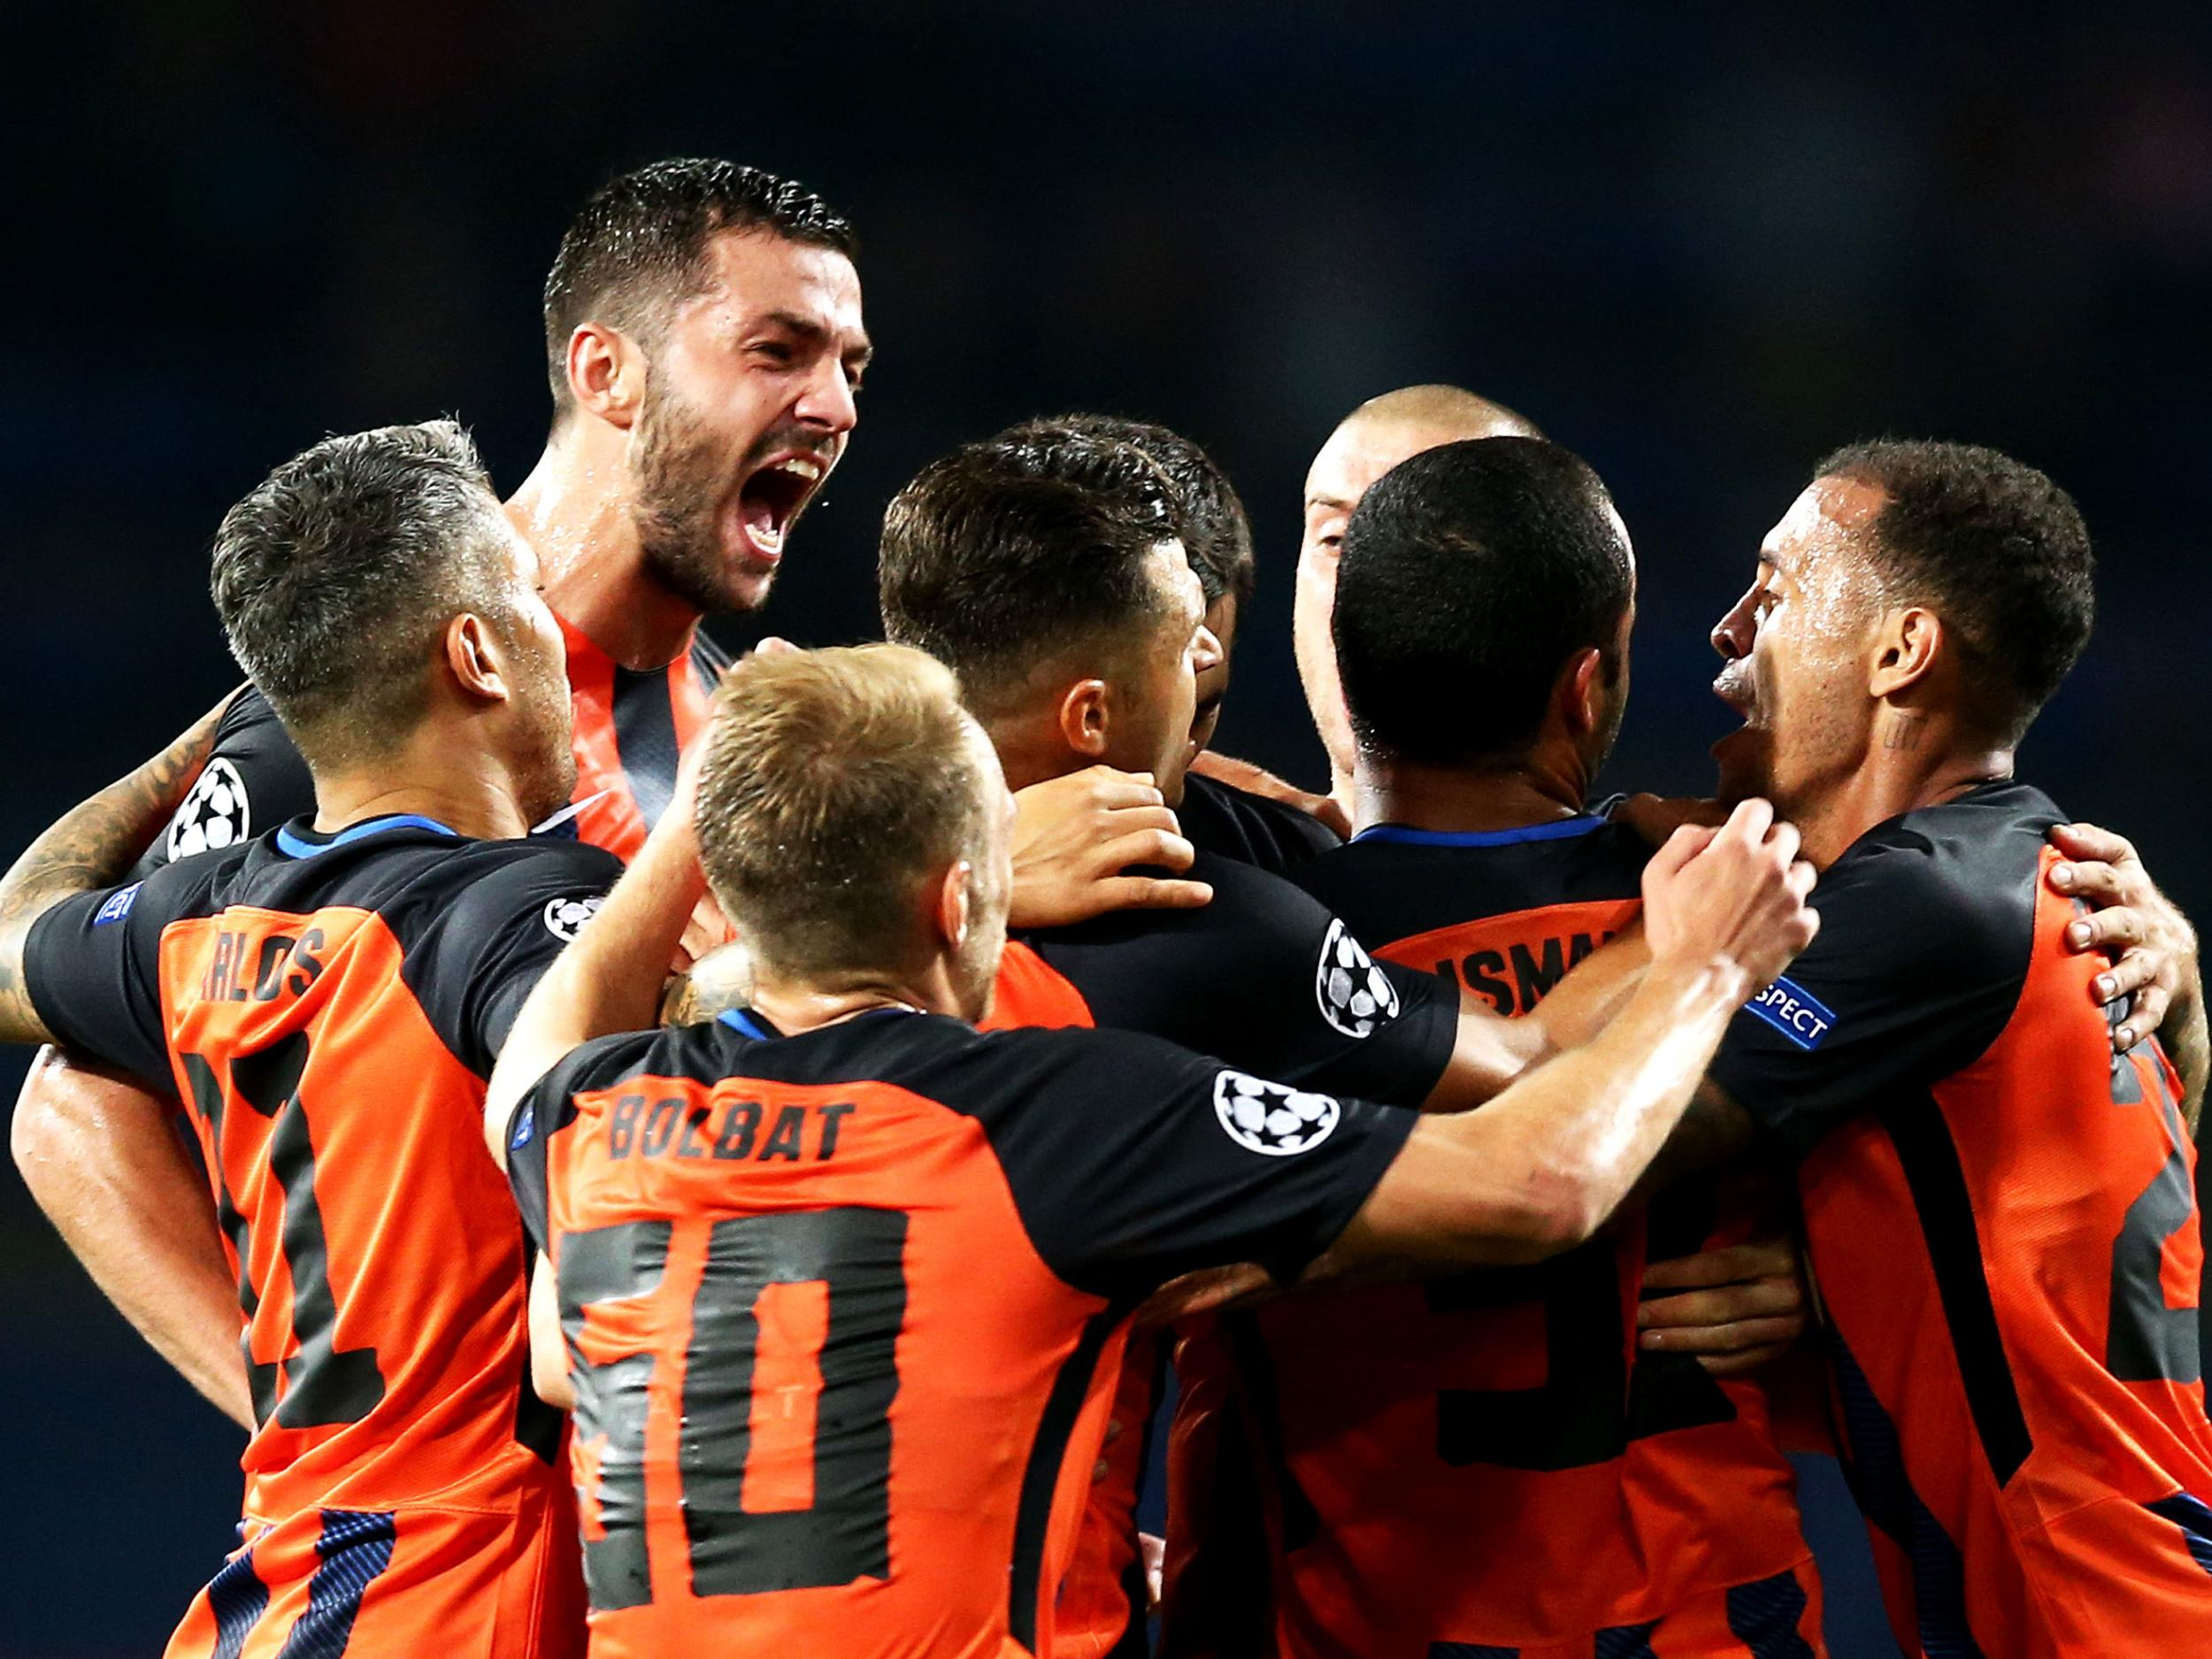 Shakhtar Donetsk vs Man City: What can Pep Guardiola's side expect from their familiar foes?